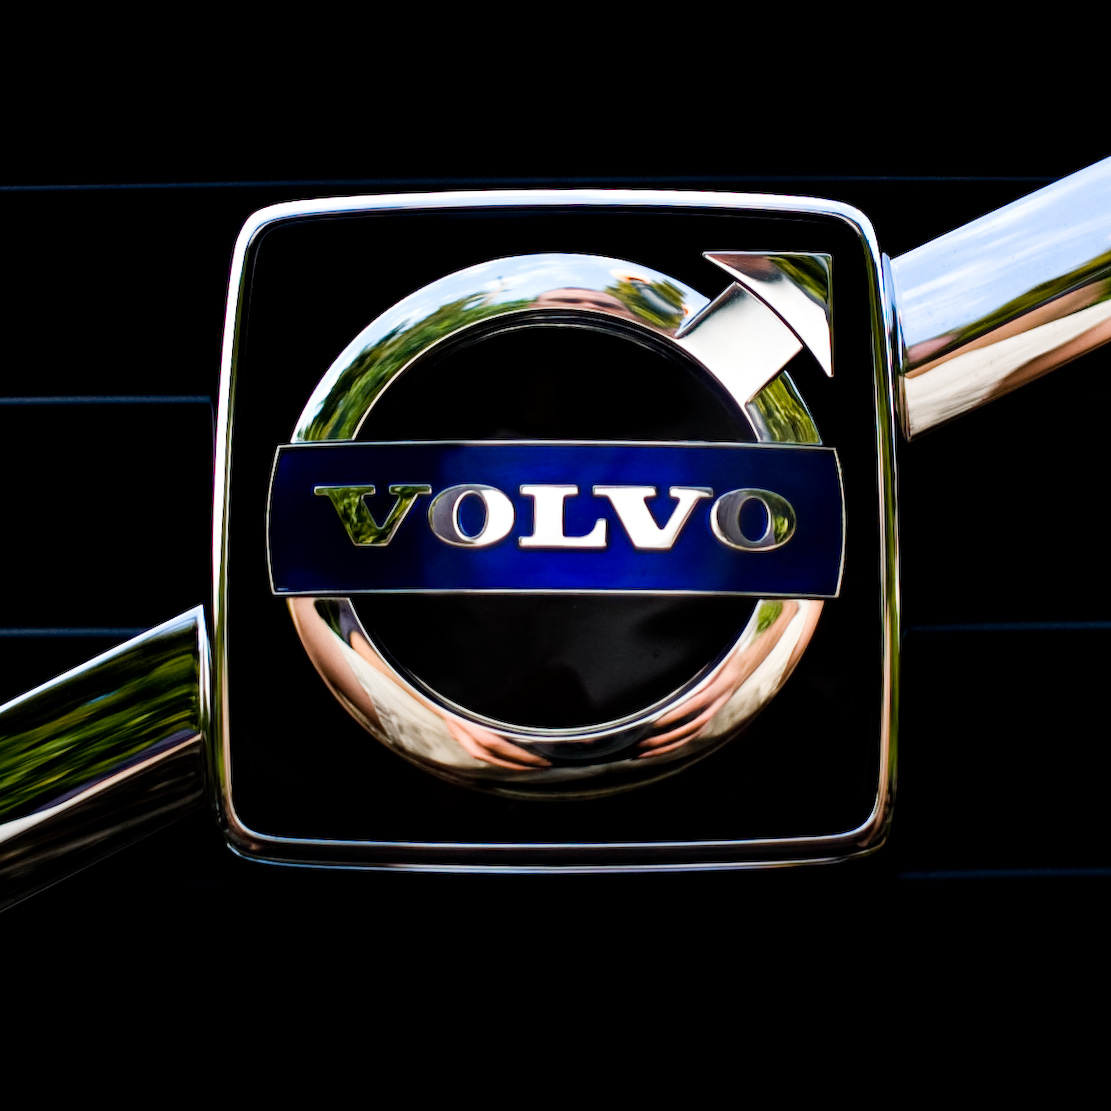 Volvo Symbol Wallpaper